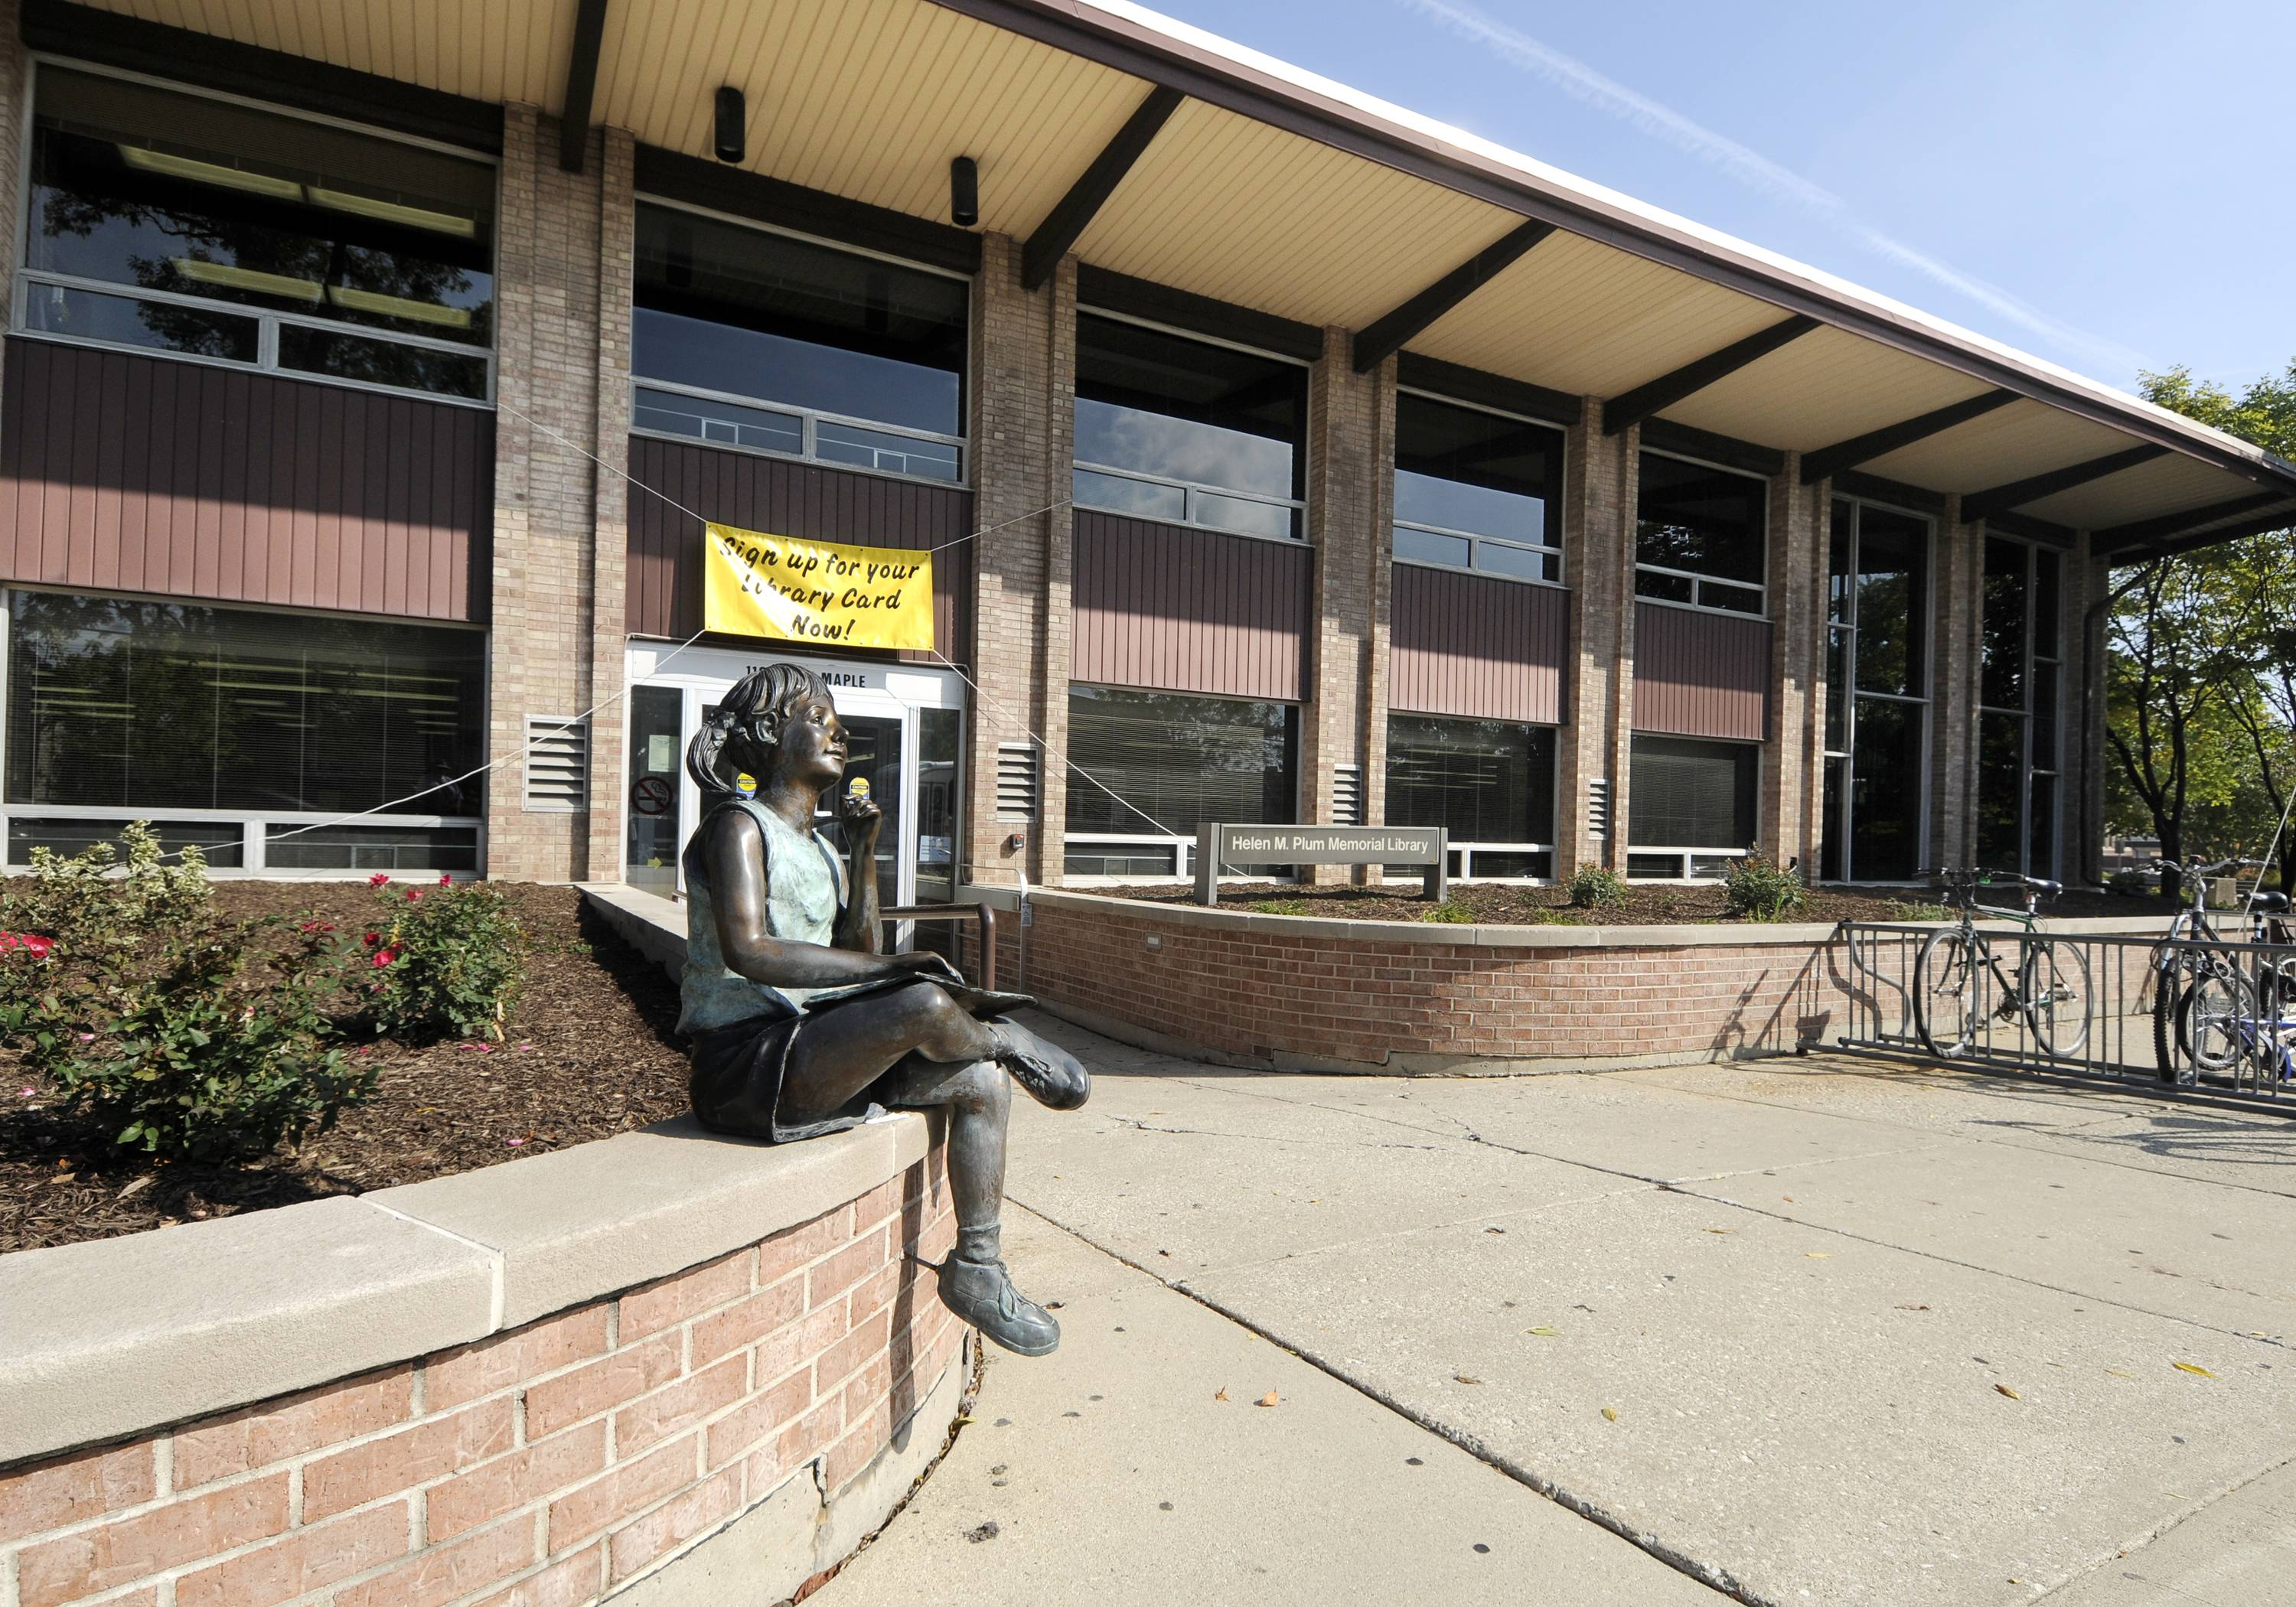 In preparation for referendum, Lombard library hires firms to analyze building